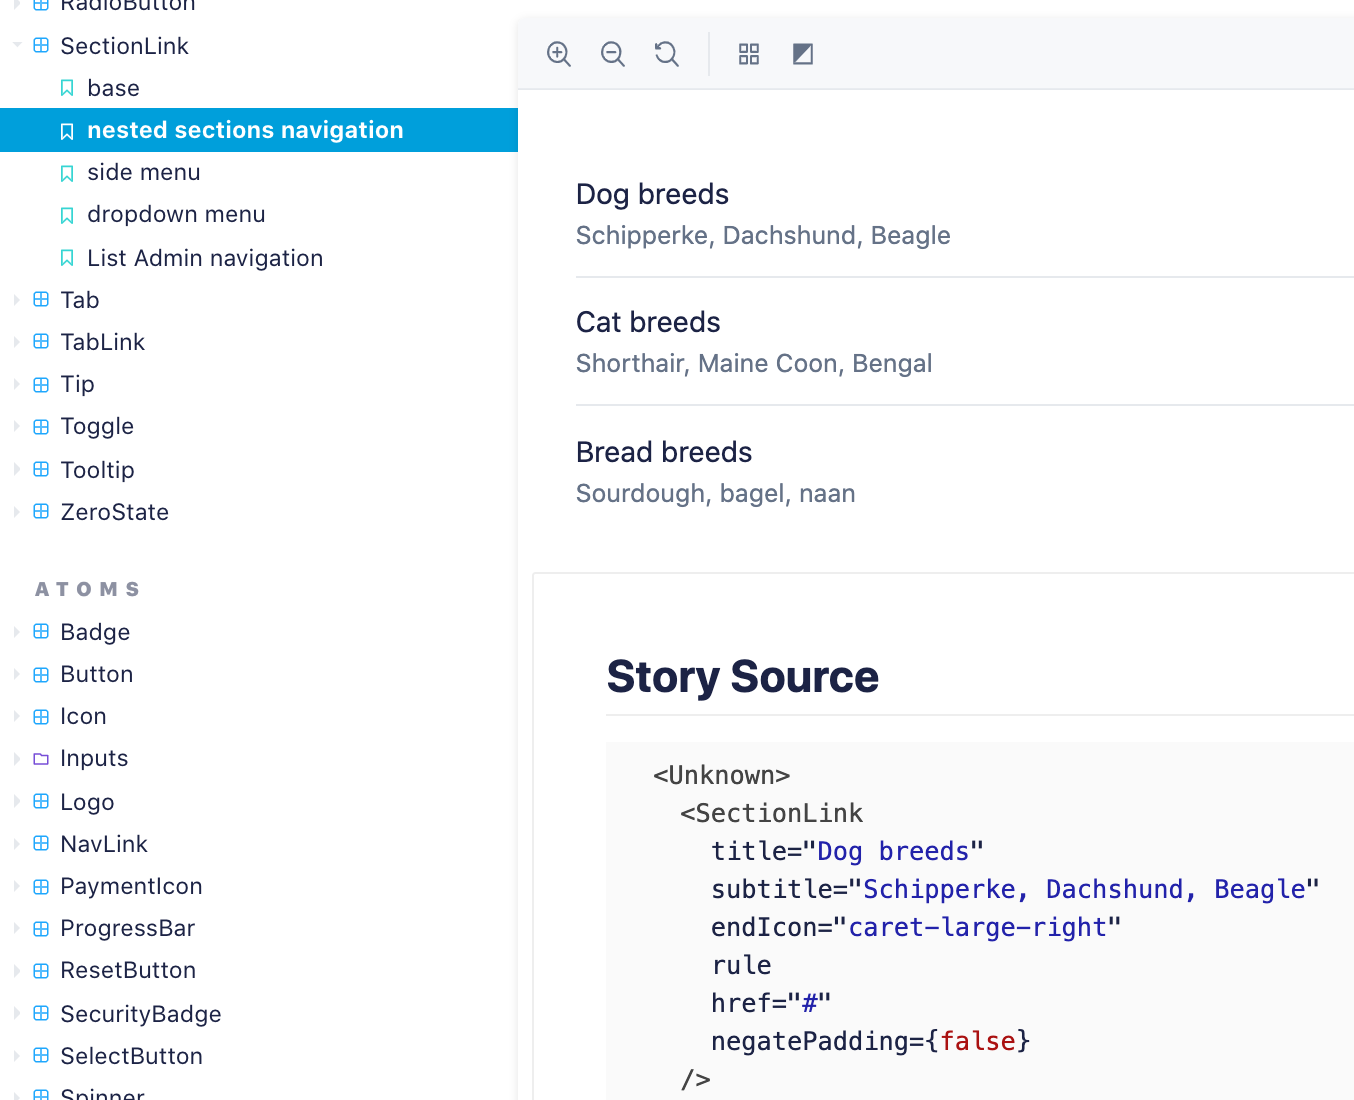 a screenshot of Storybook, featuring the SectionLink component